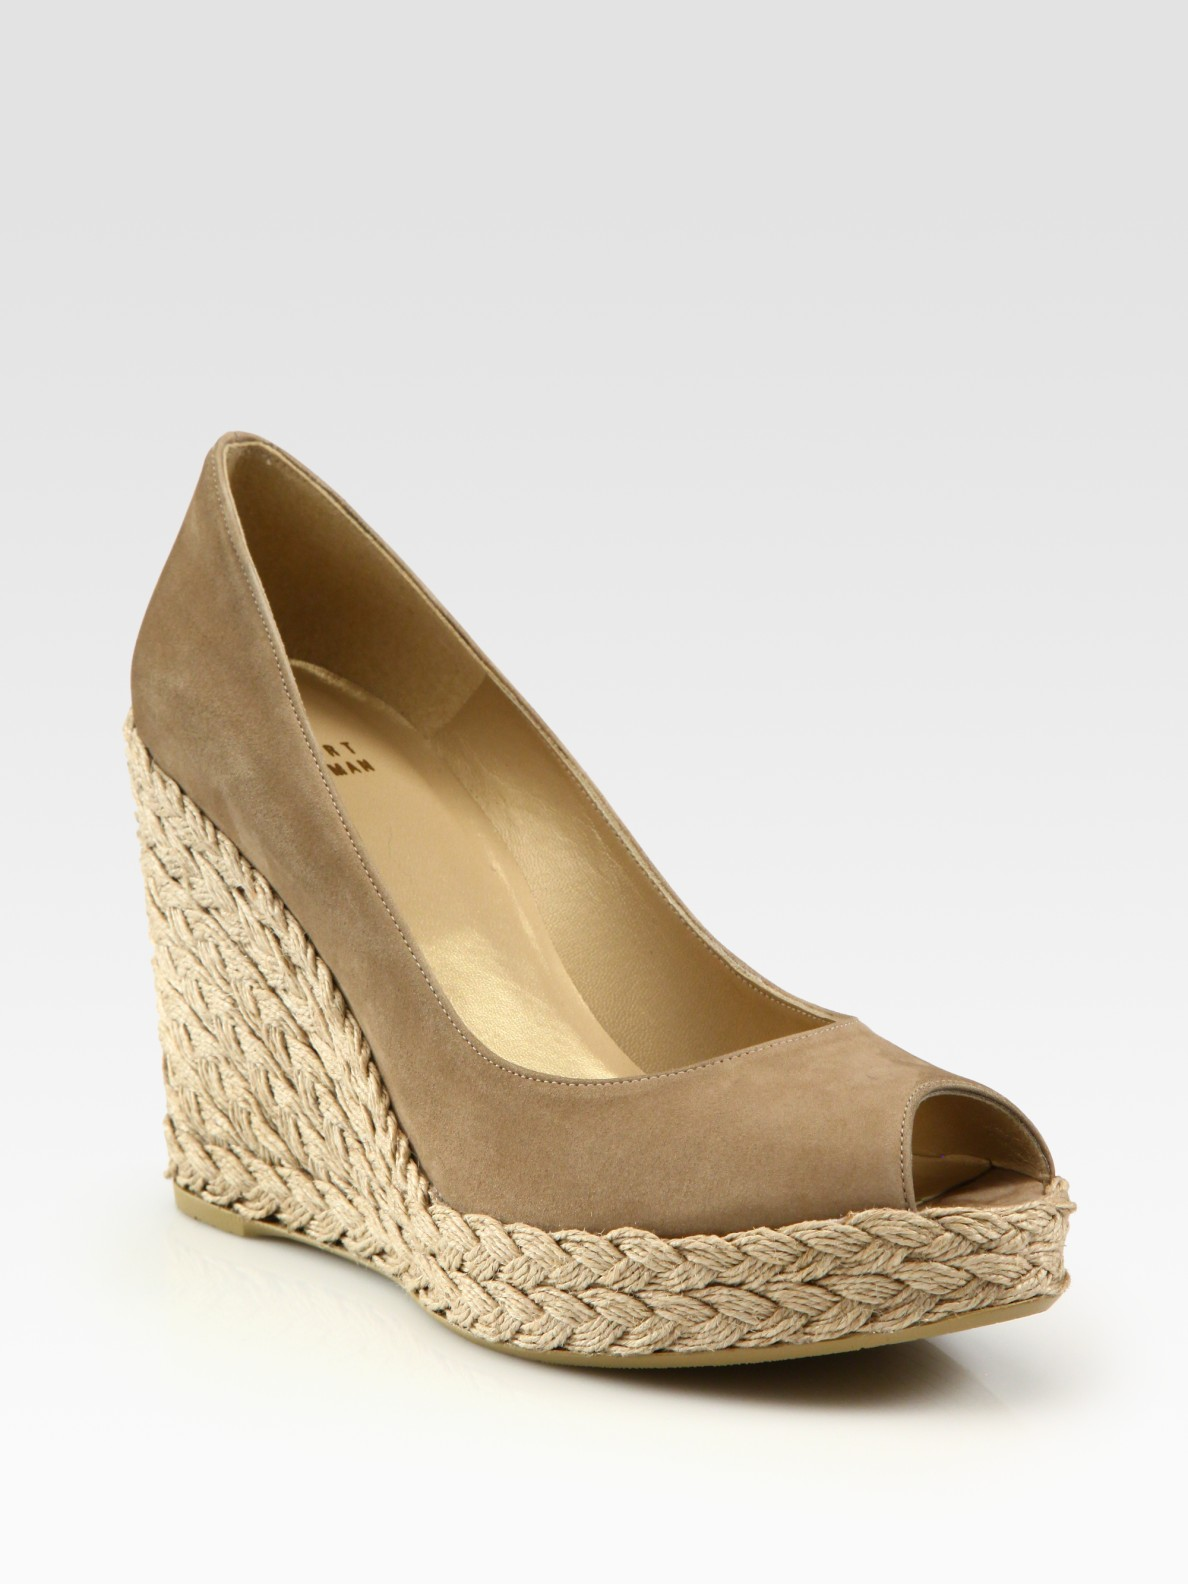 Natural Leather Color Women Shoes